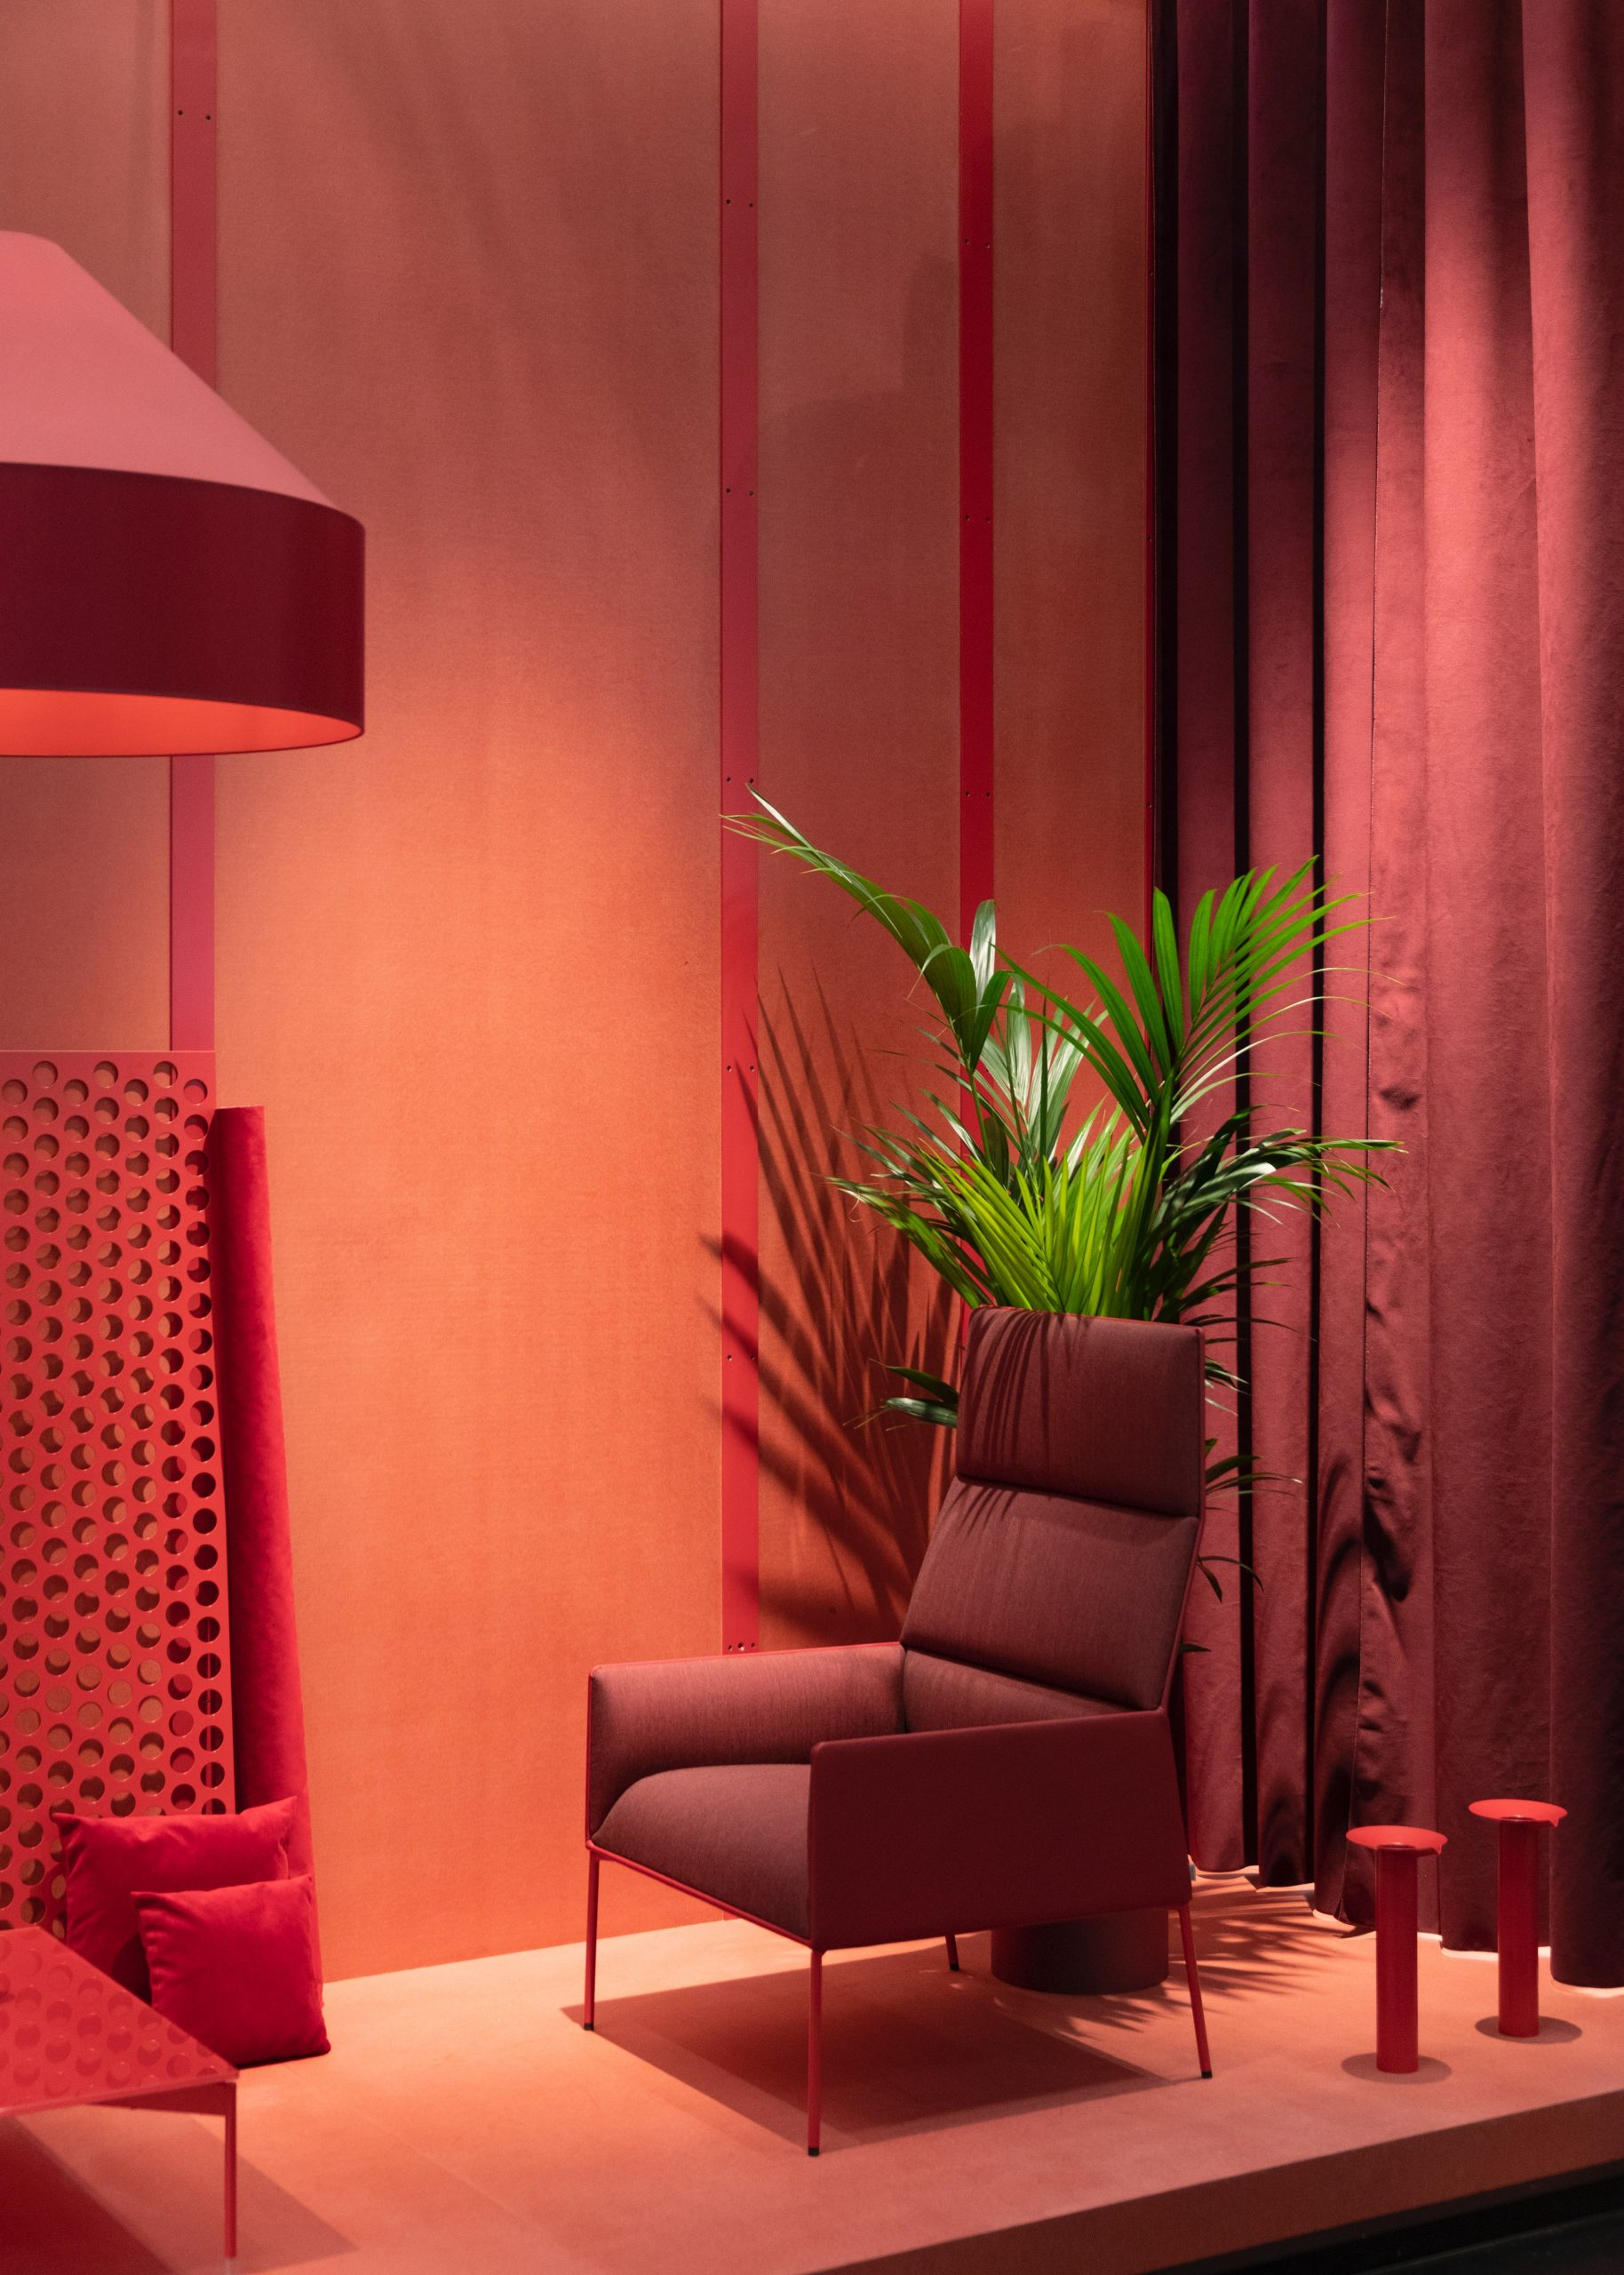 green plant in a room with red furnishings